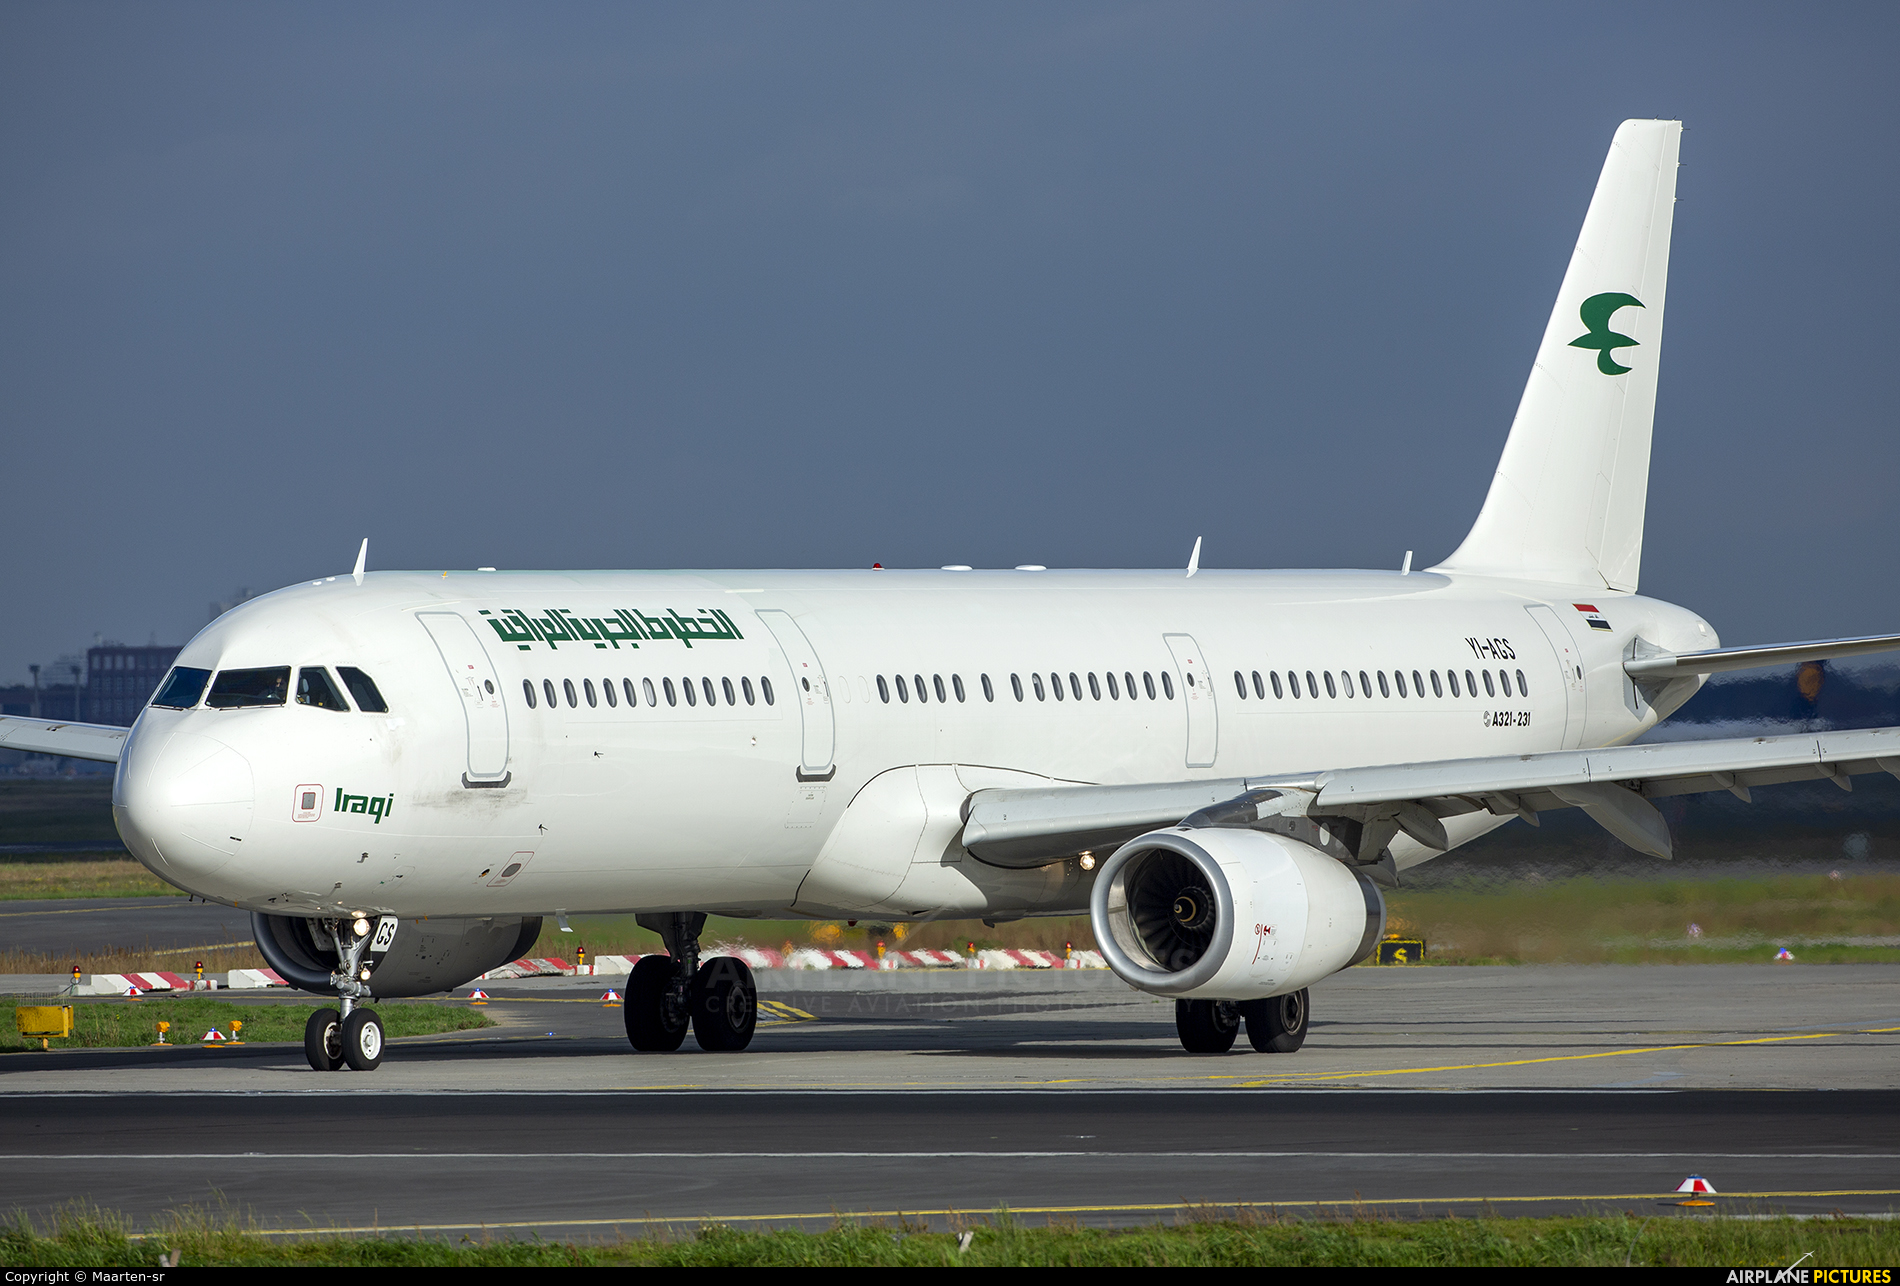 Iraqi Airways YI-AGS aircraft at Frankfurt